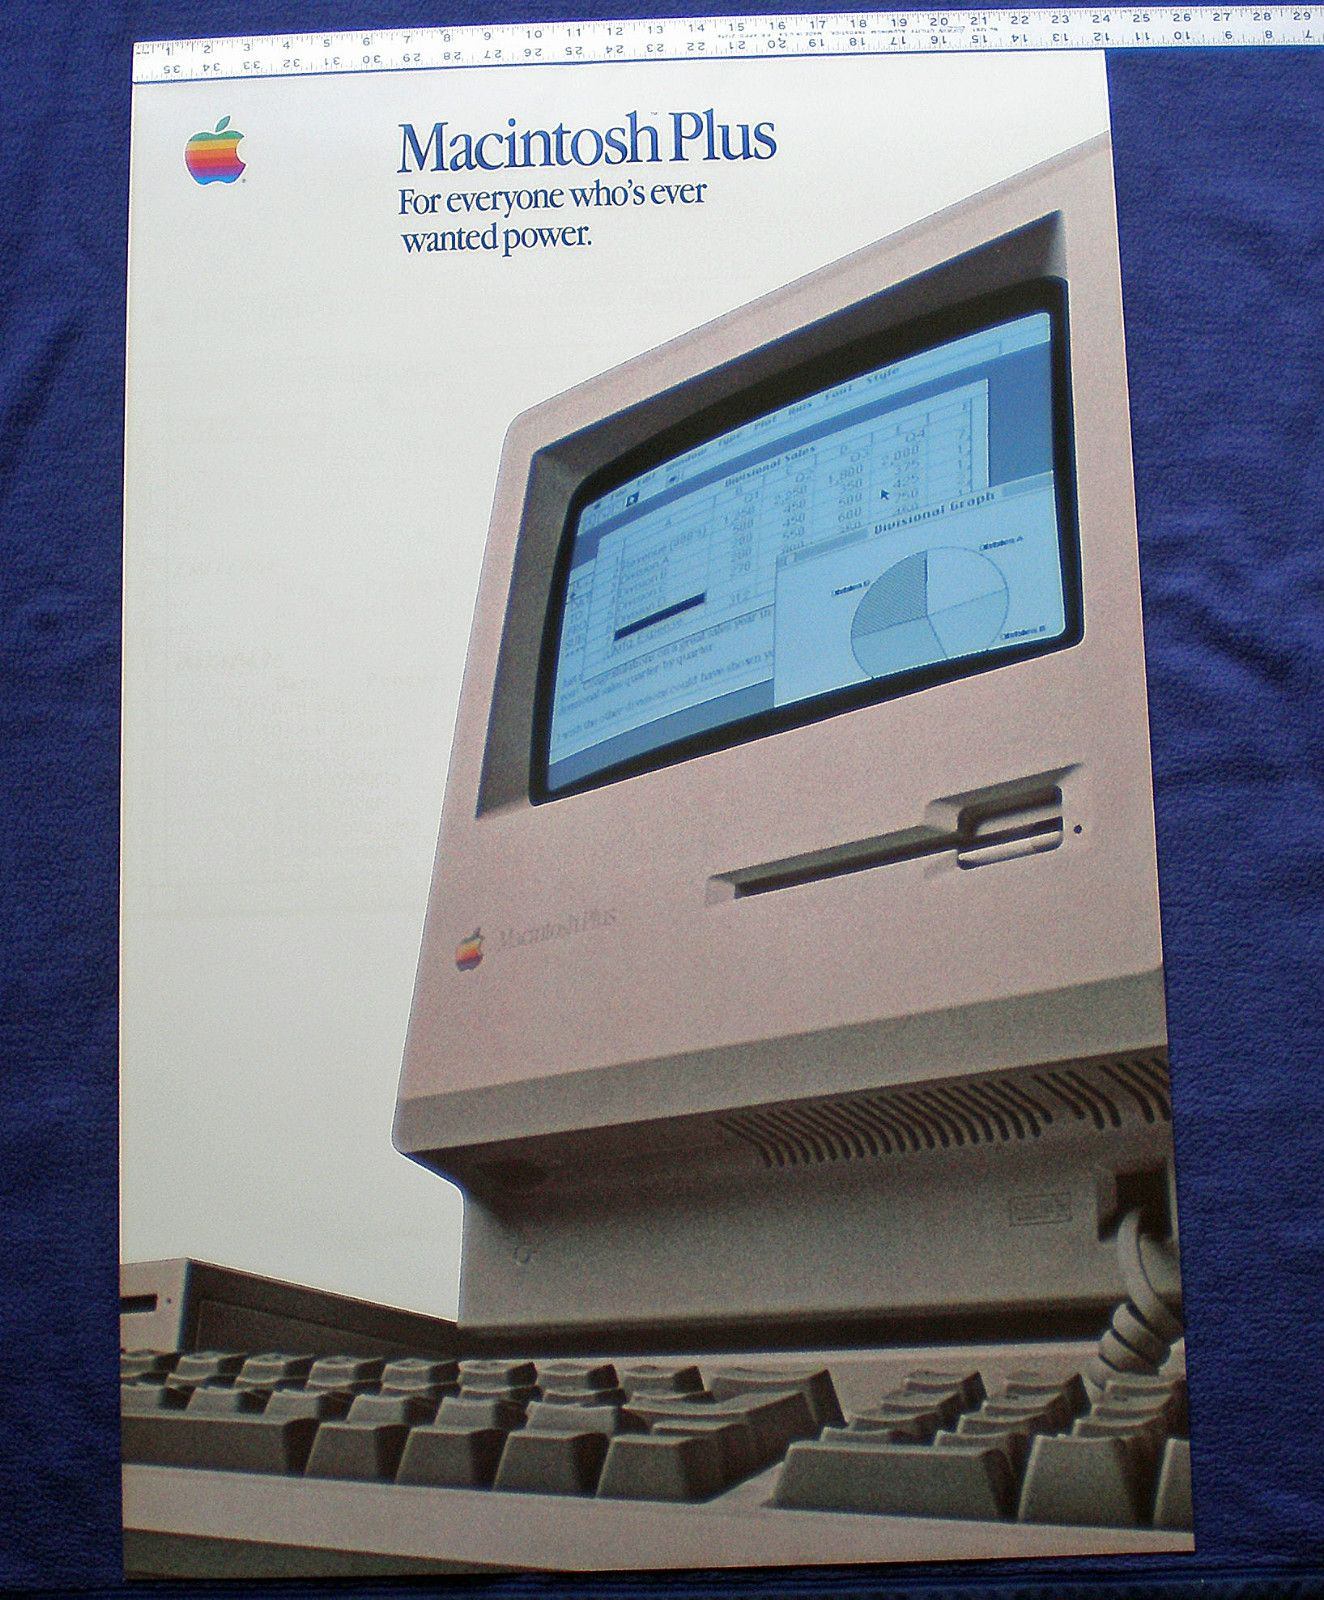 Apple Computer Vintage Macintosh Plus Poster In Excellent Condition 1980s Macintosh Apple Apple Computer